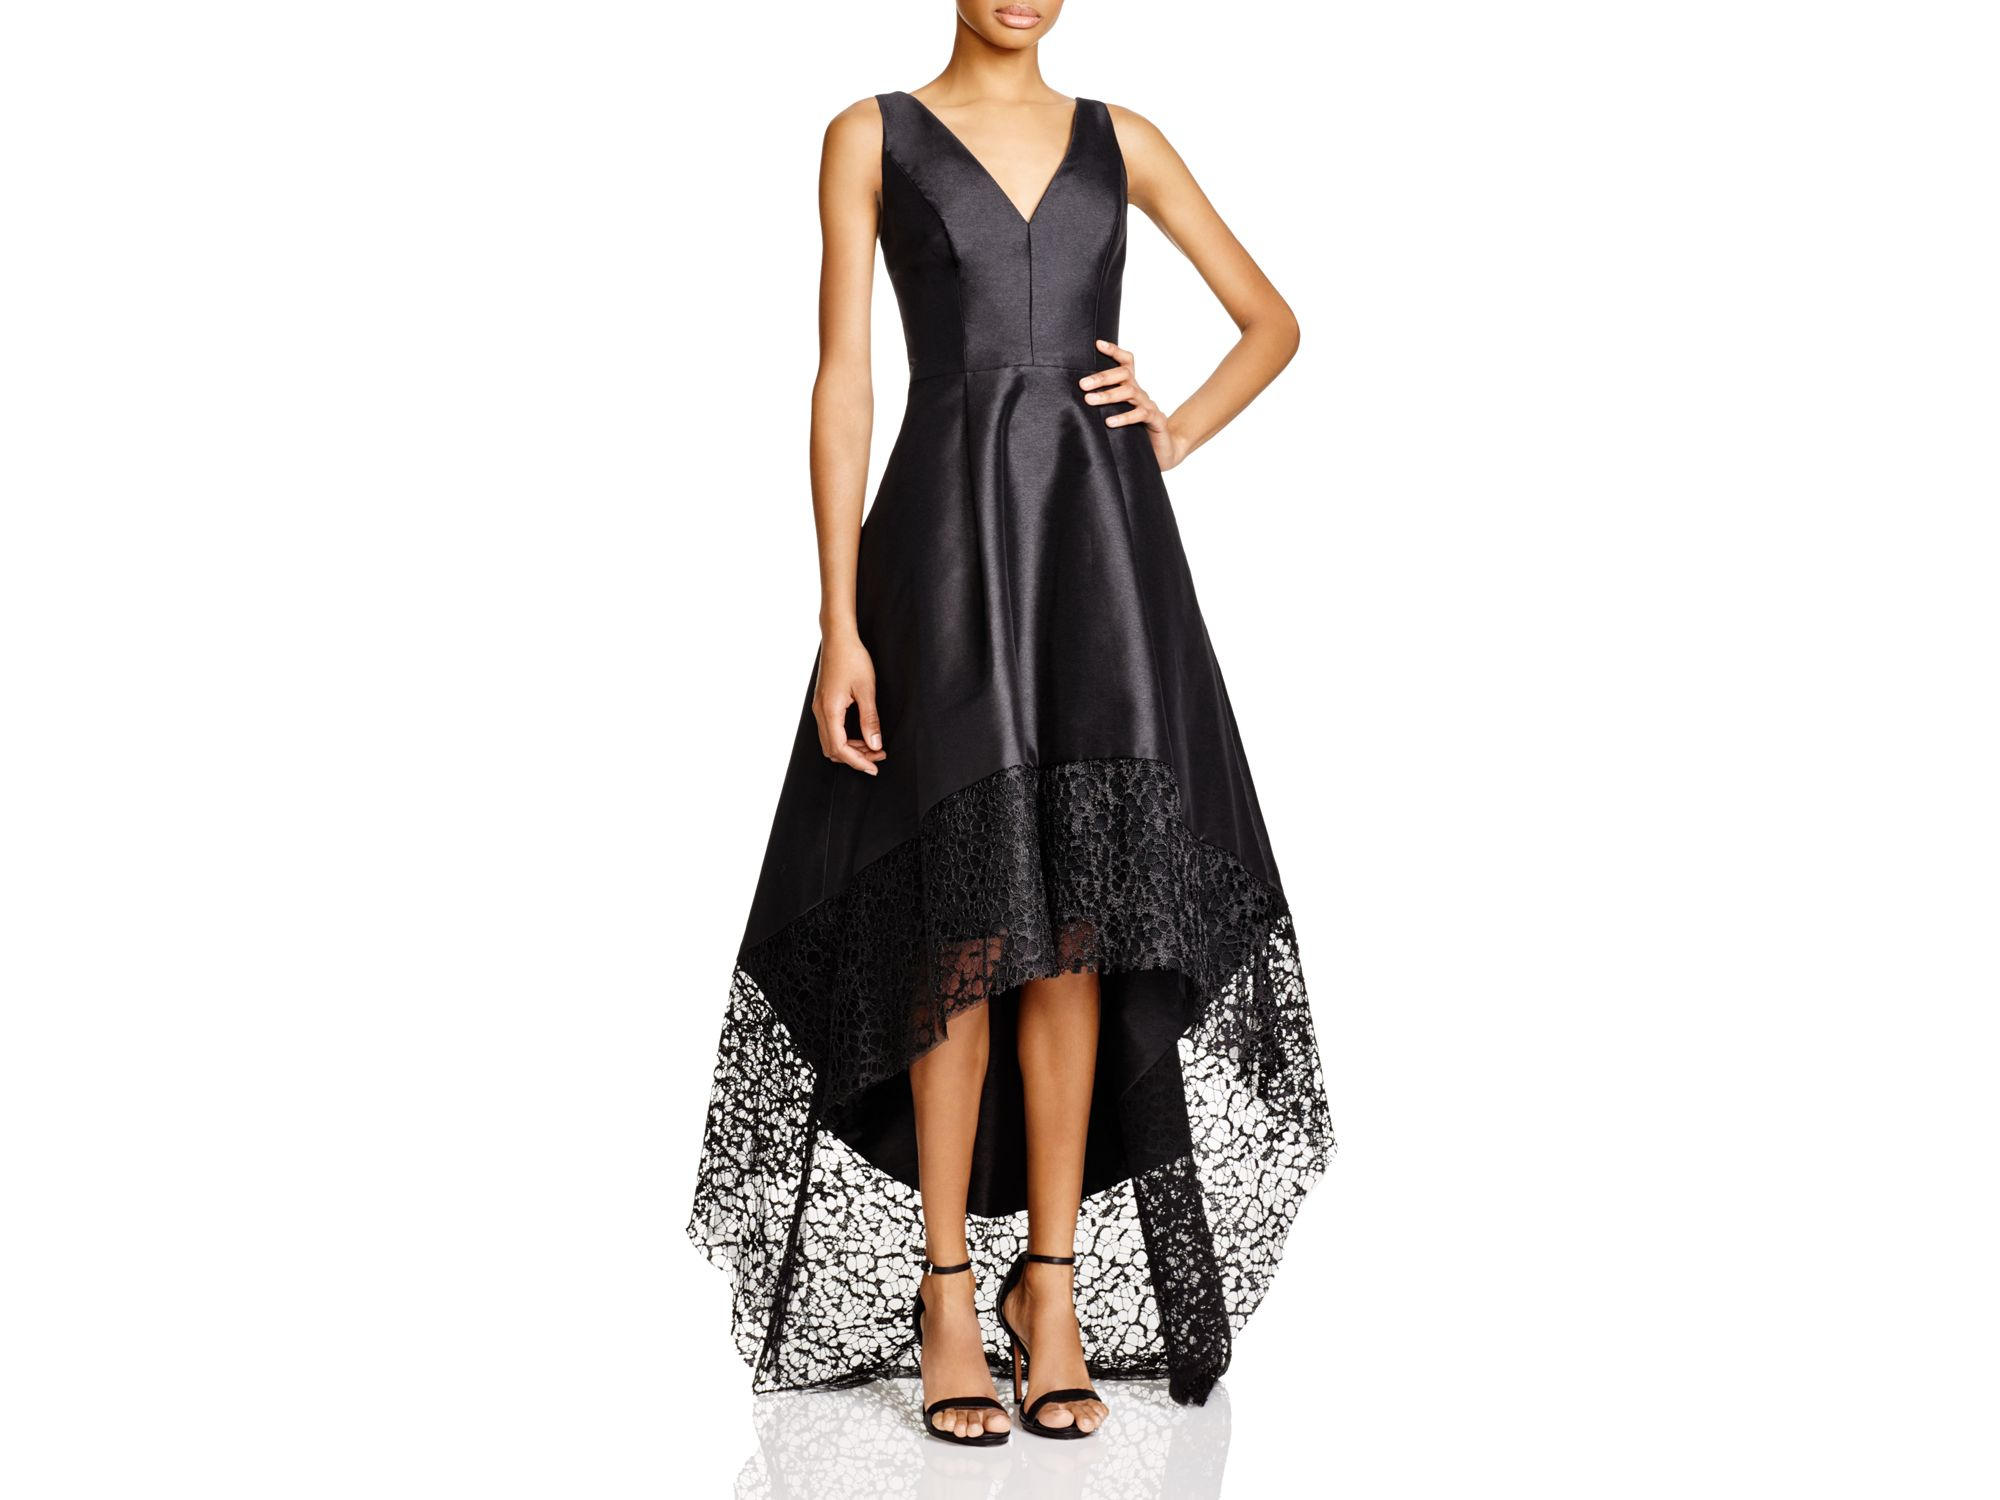 Lyst - Ml monique lhuillier Ml Monique Lhuiller Sleeveless High ...